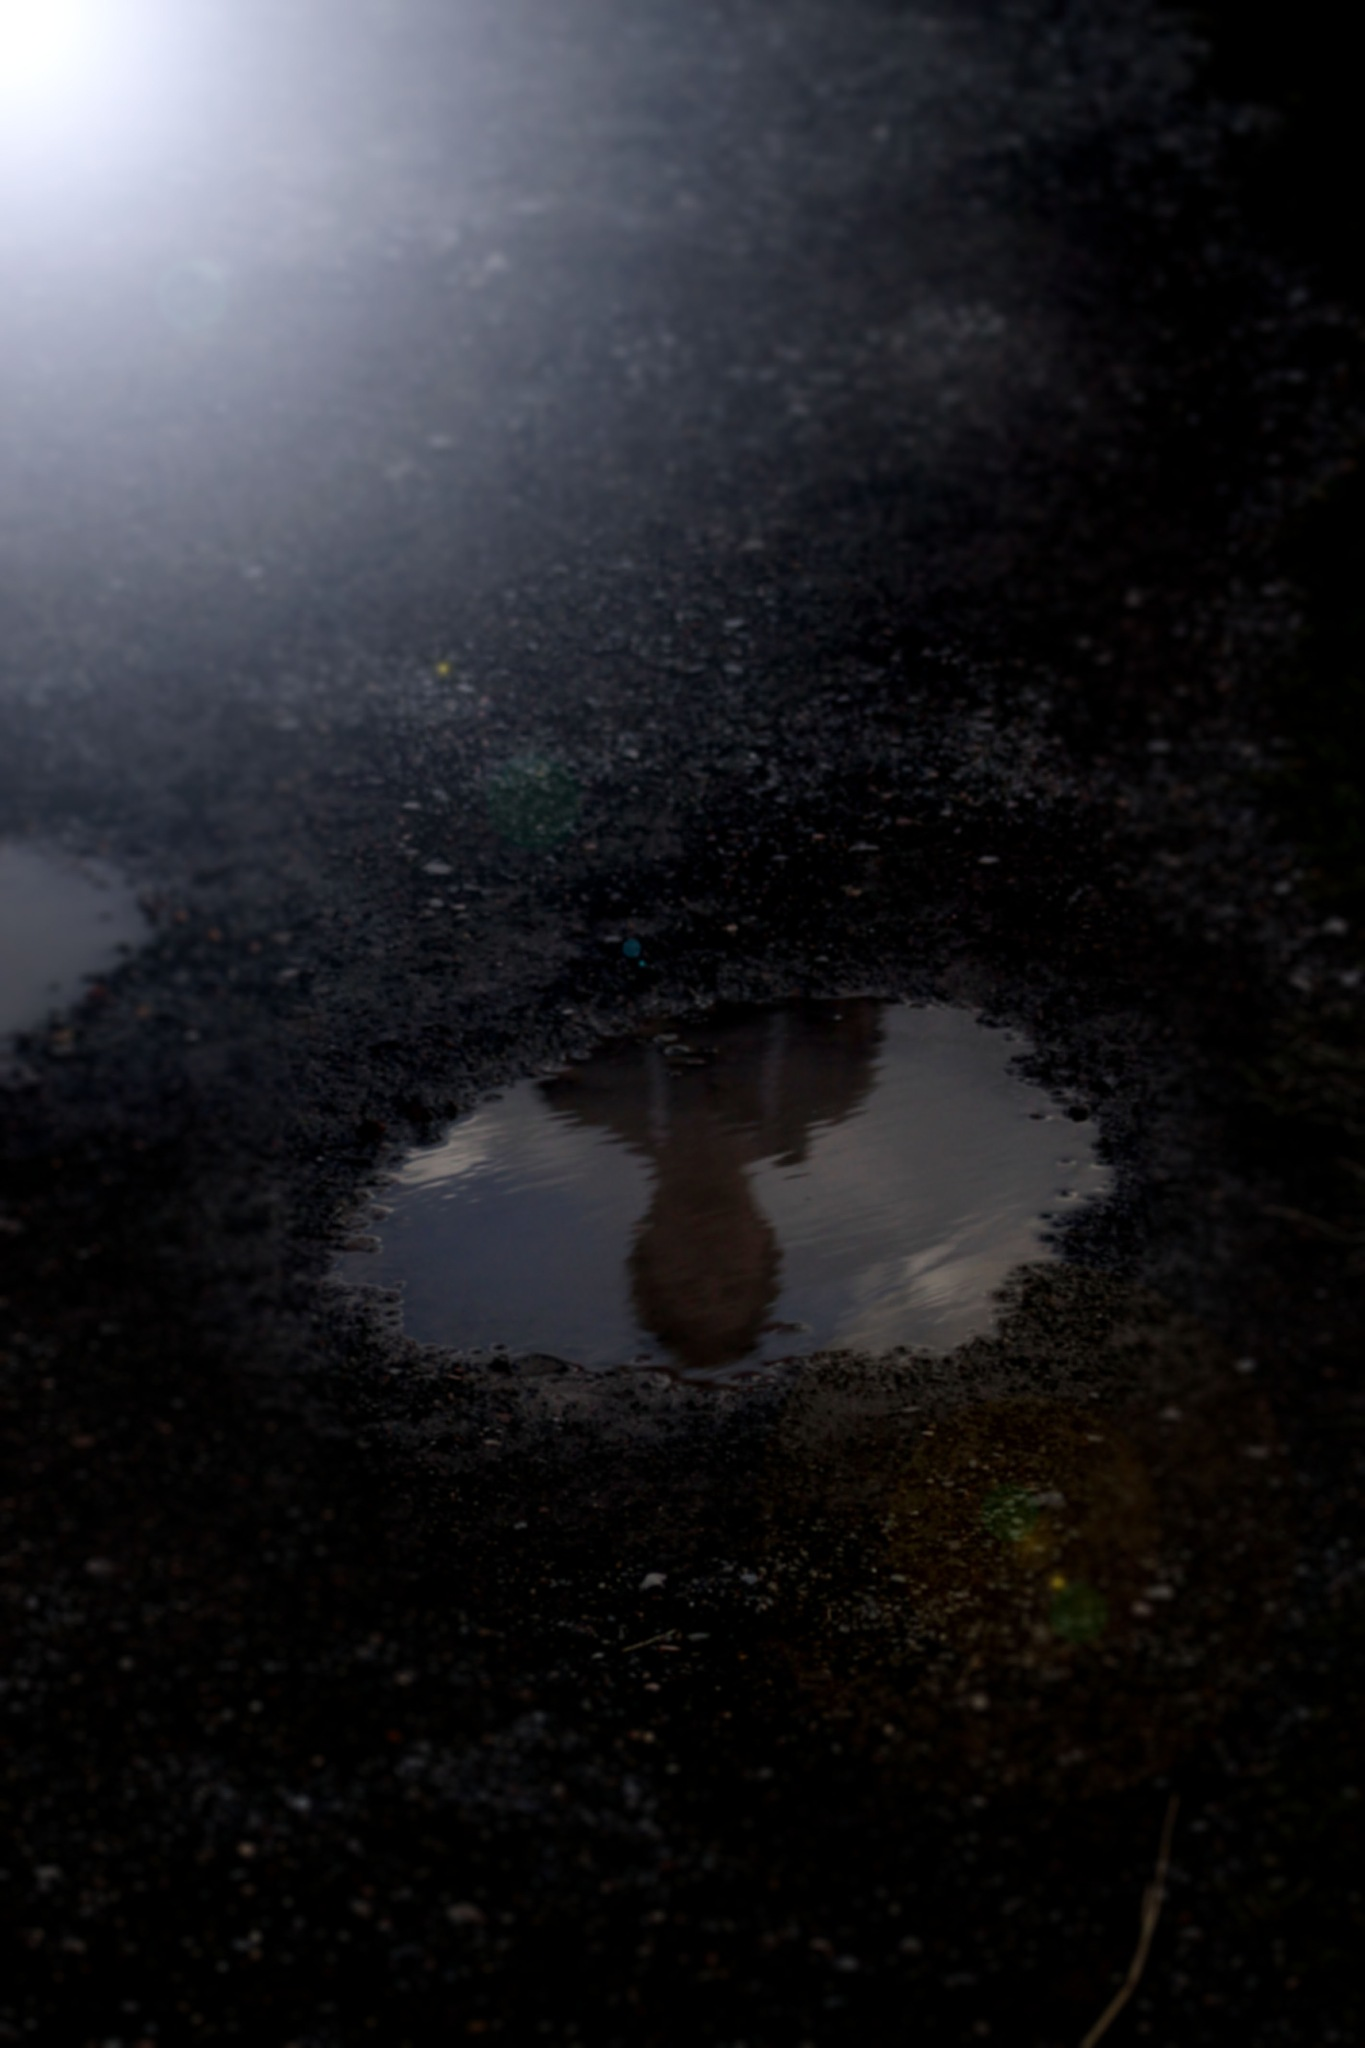 Surreal puddle reflection by Rudi Beauchamp